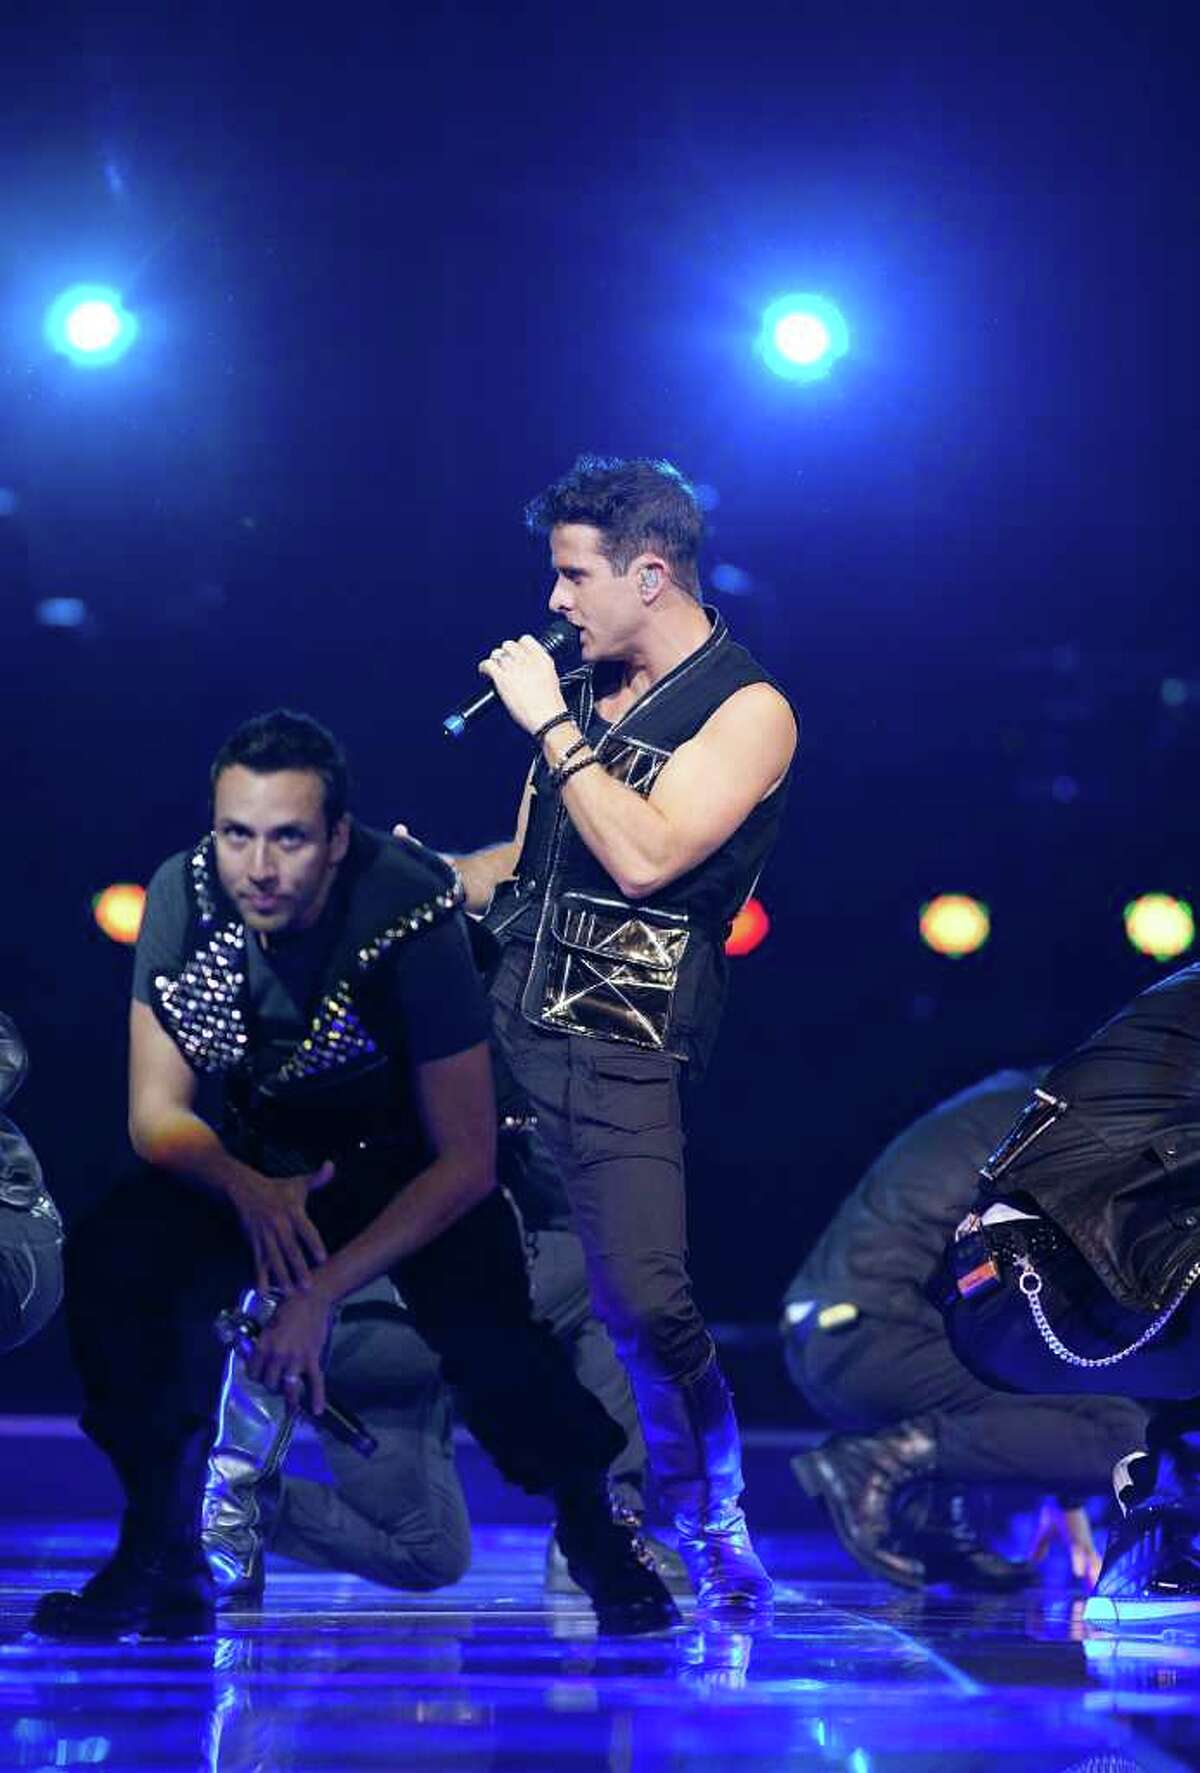 UNCASVILLE, CT - JUNE 02: Howie Dorough (L) and Joey McIntyre perform at the New Kids On The Block and Backstreet Boys concert at Mohegan Sun Arena on June 2, 2011 in Uncasville, Connecticut. (Photo by David Surowiecki/Getty Images)